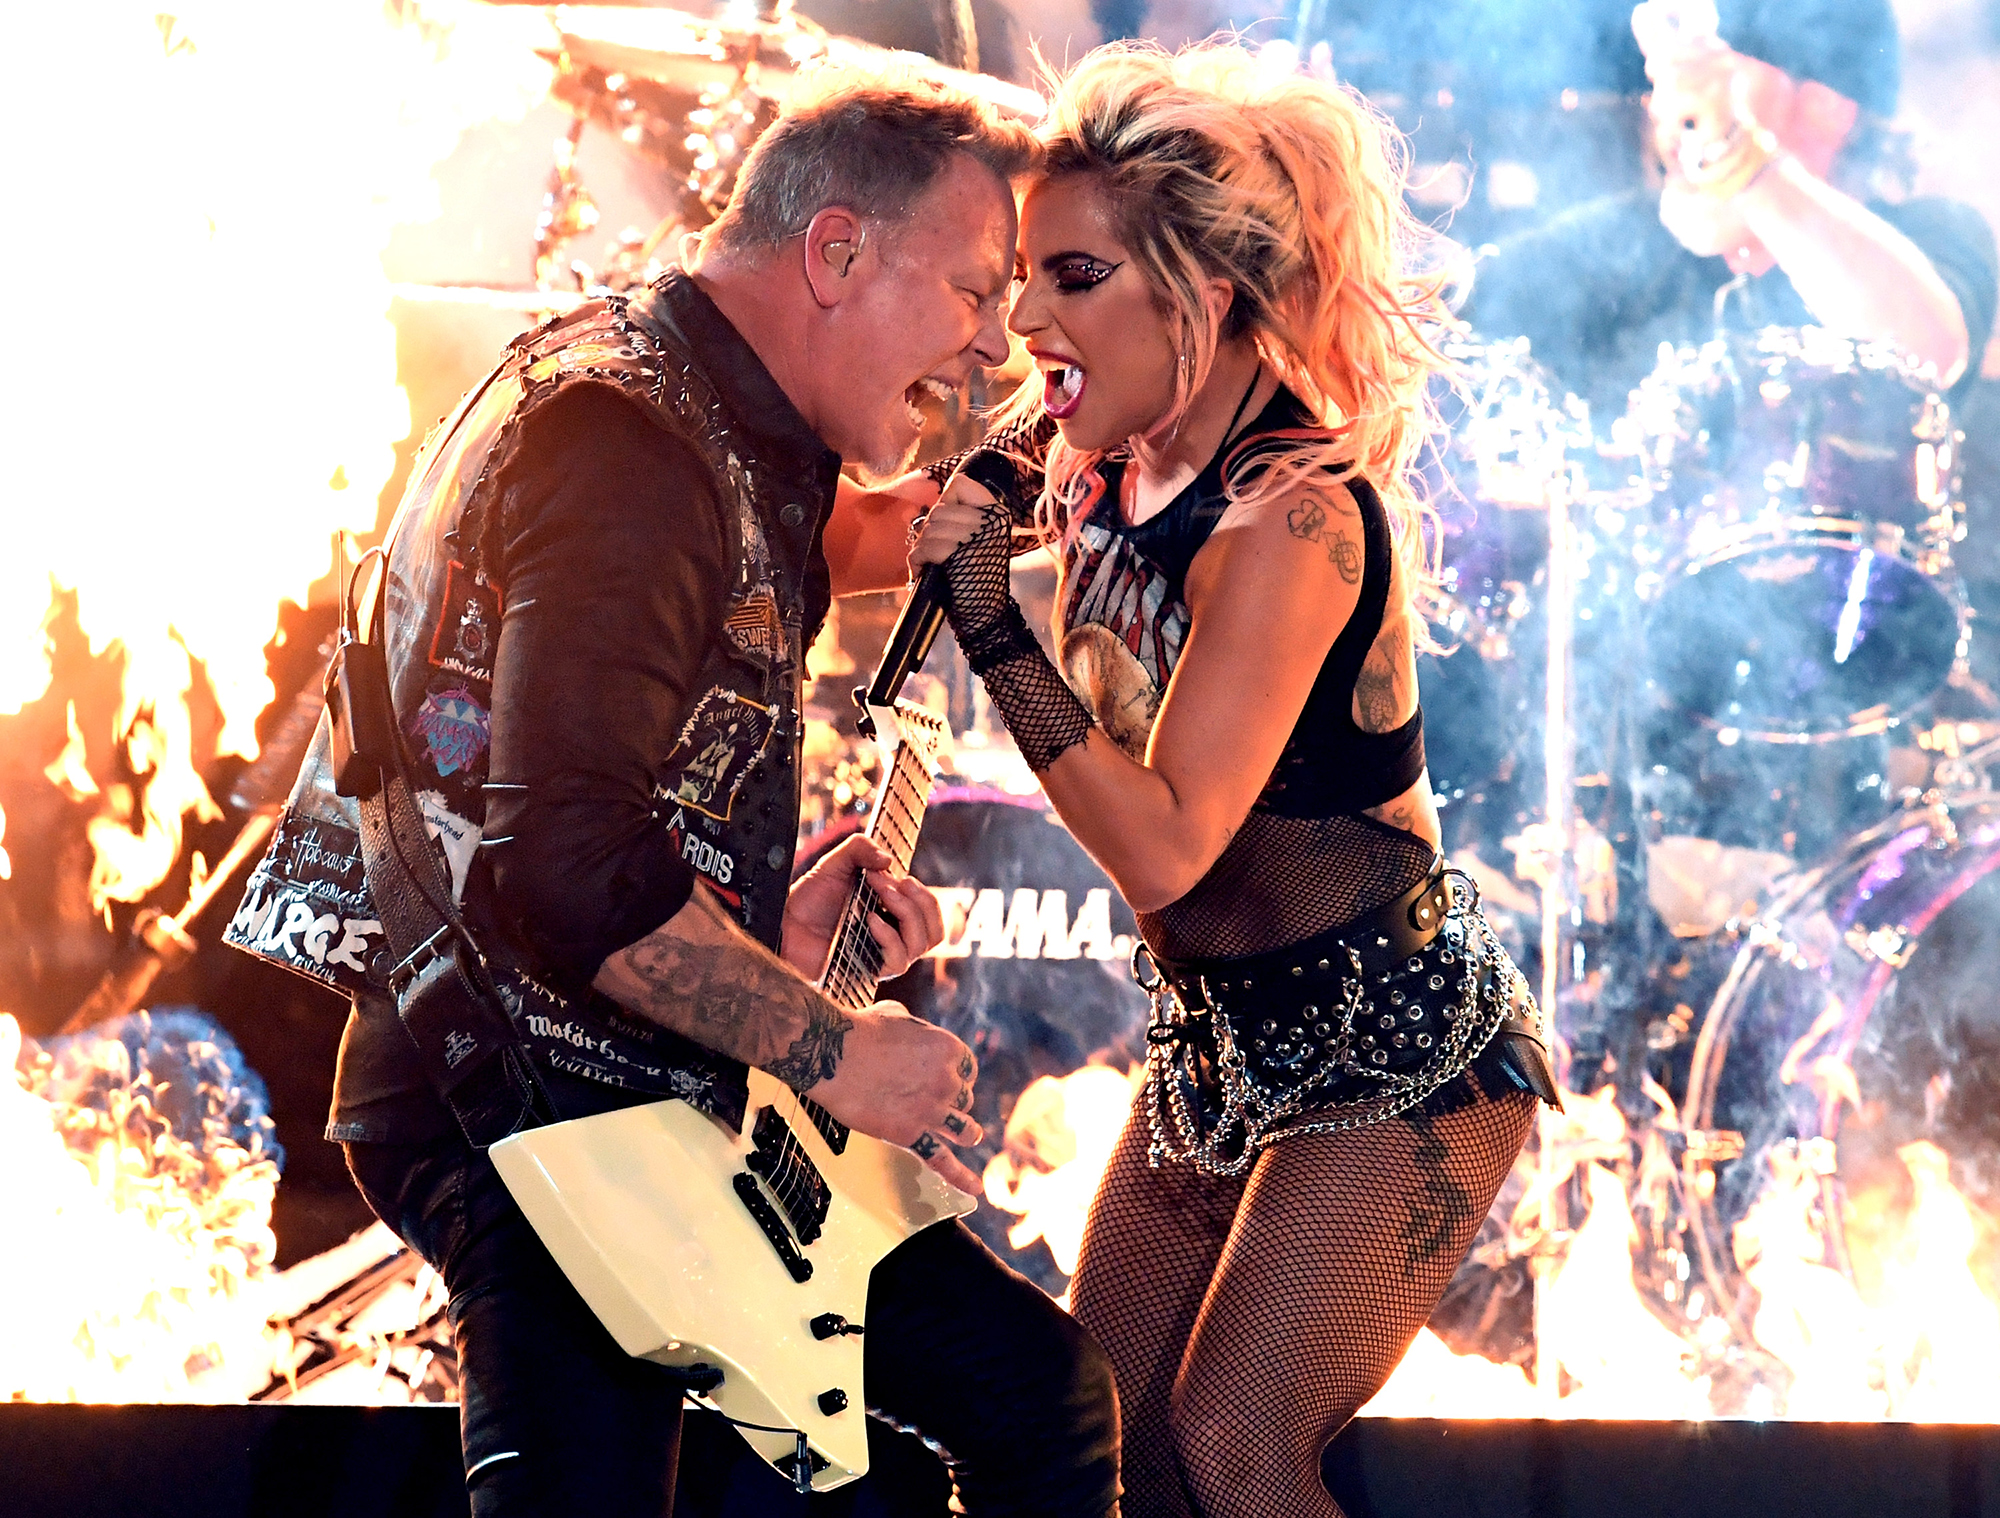 James Hetfield and Lady Gaga perform during the 59th GRAMMY Awards at STAPLES Center, on Feb. 12, 2017 in Los Angeles.